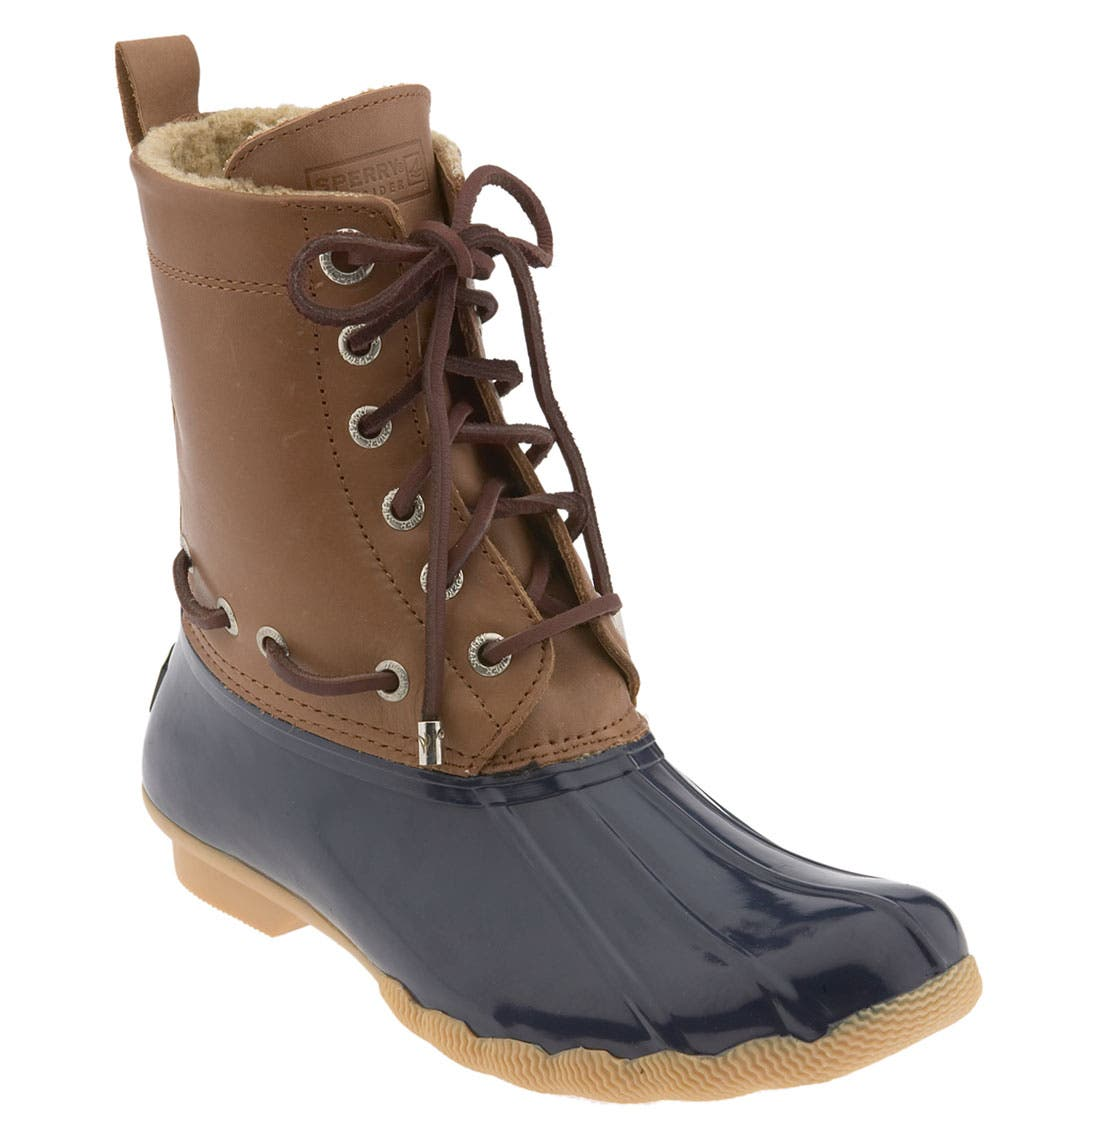 sperry shearwater boots 28 images sperry top sider